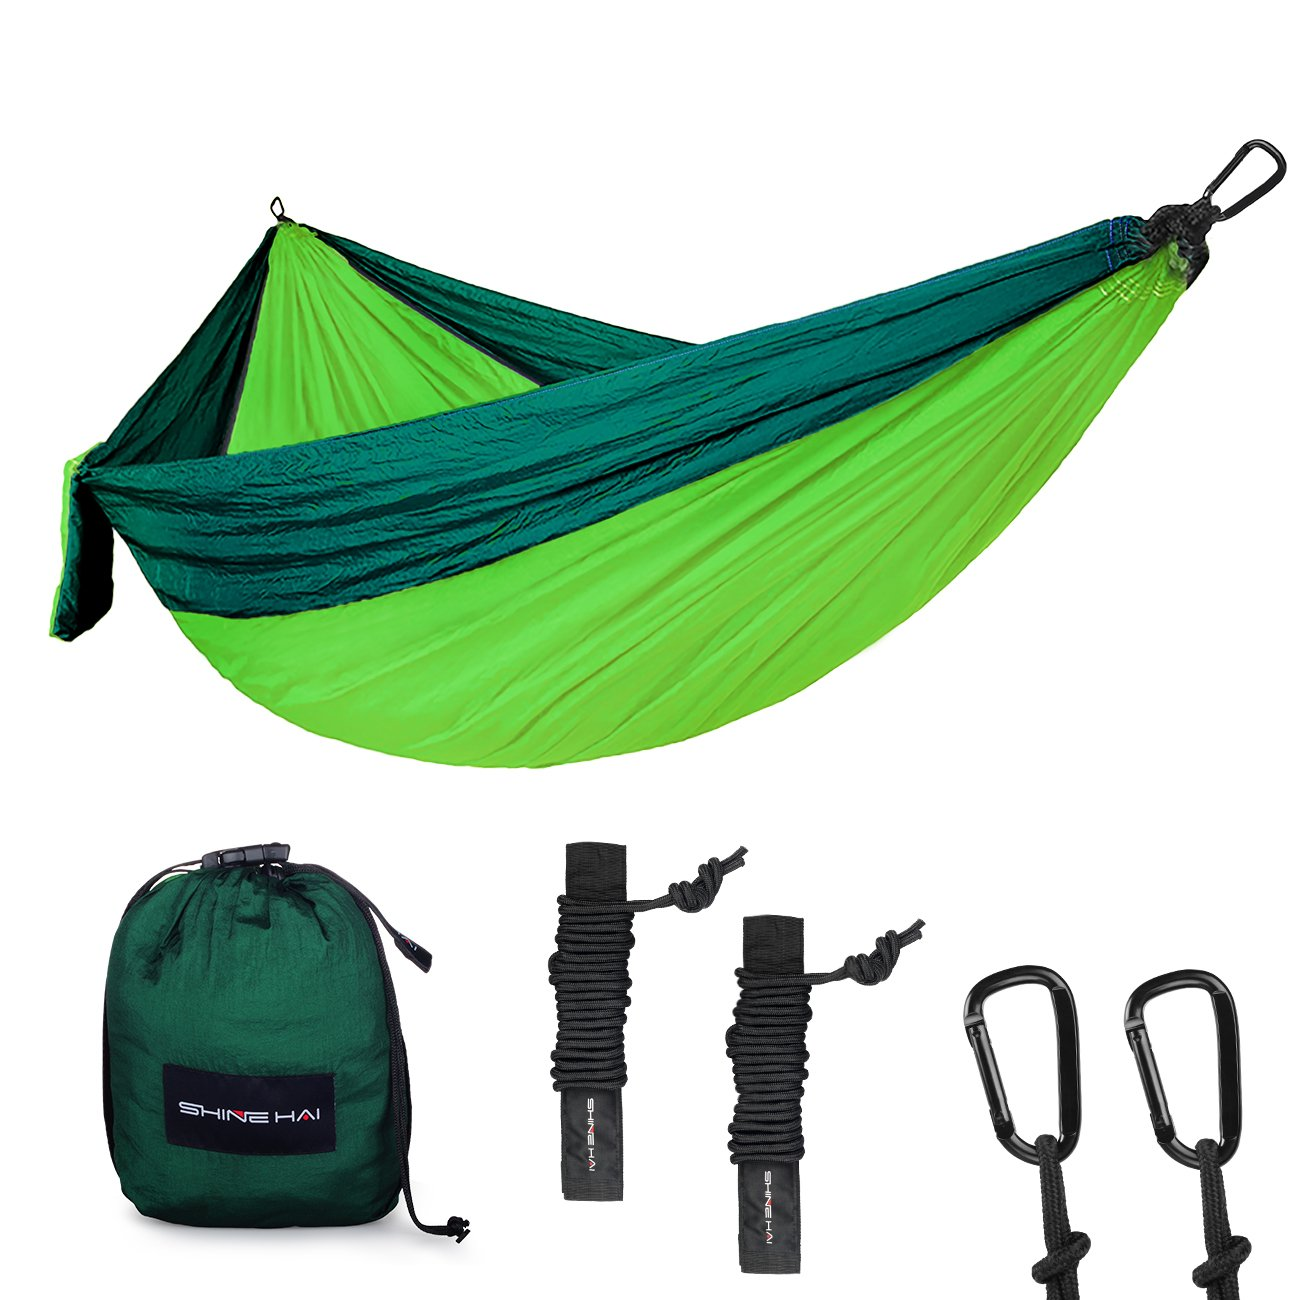 SHINE HAI Double Camping Hammock, Portable Lightweight Parachute Nylon Garden Hammock, Two Persons Bed for Backpacking, Camping, Travel, Beach, Yard by SHINE HAI